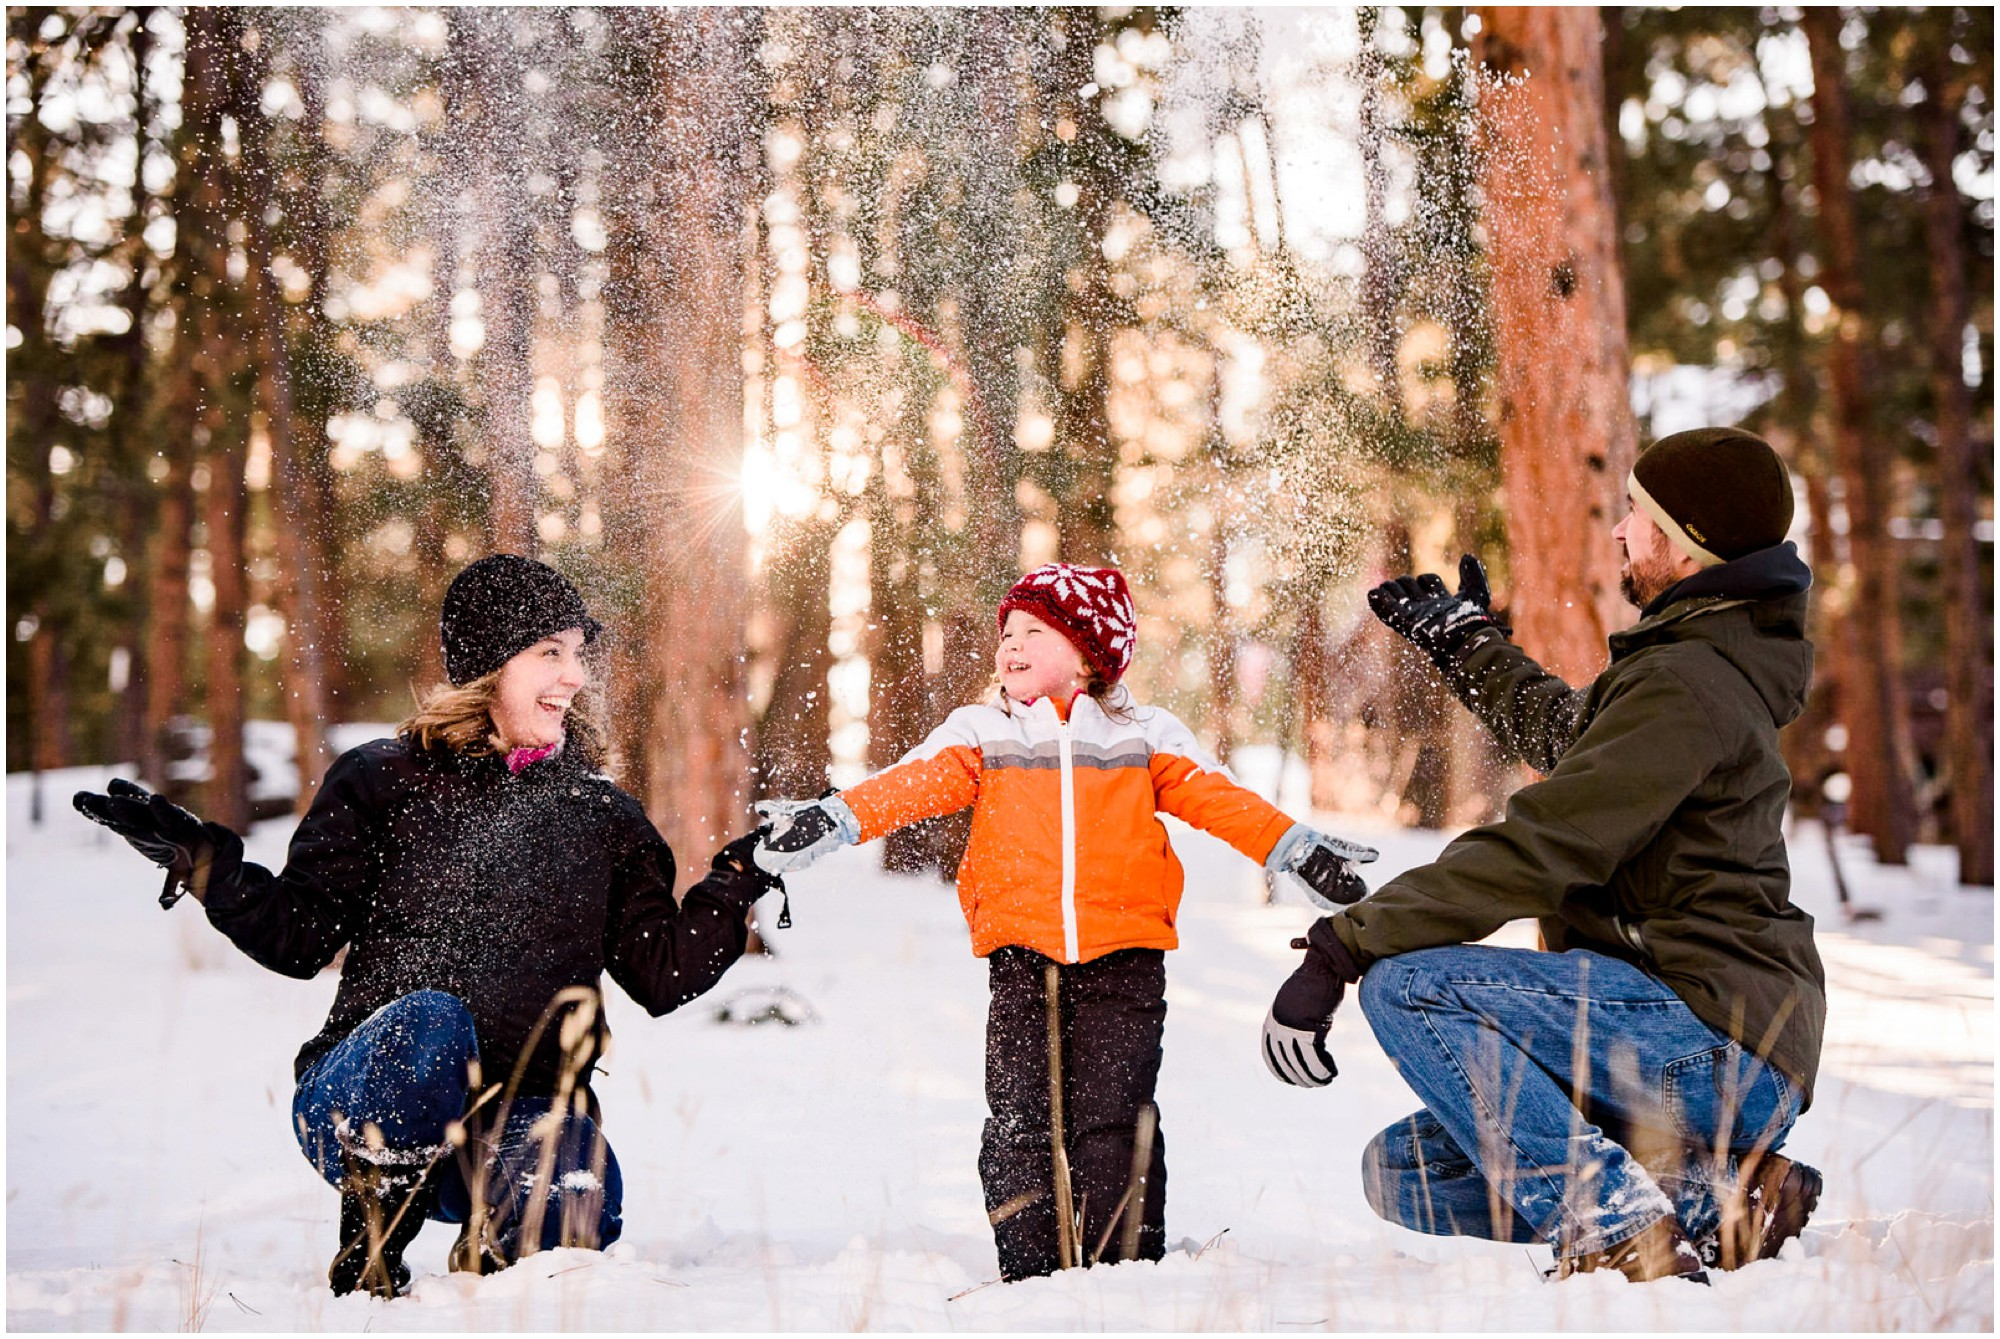 258-Evergreen-family-documentary-winter-photography.jpg